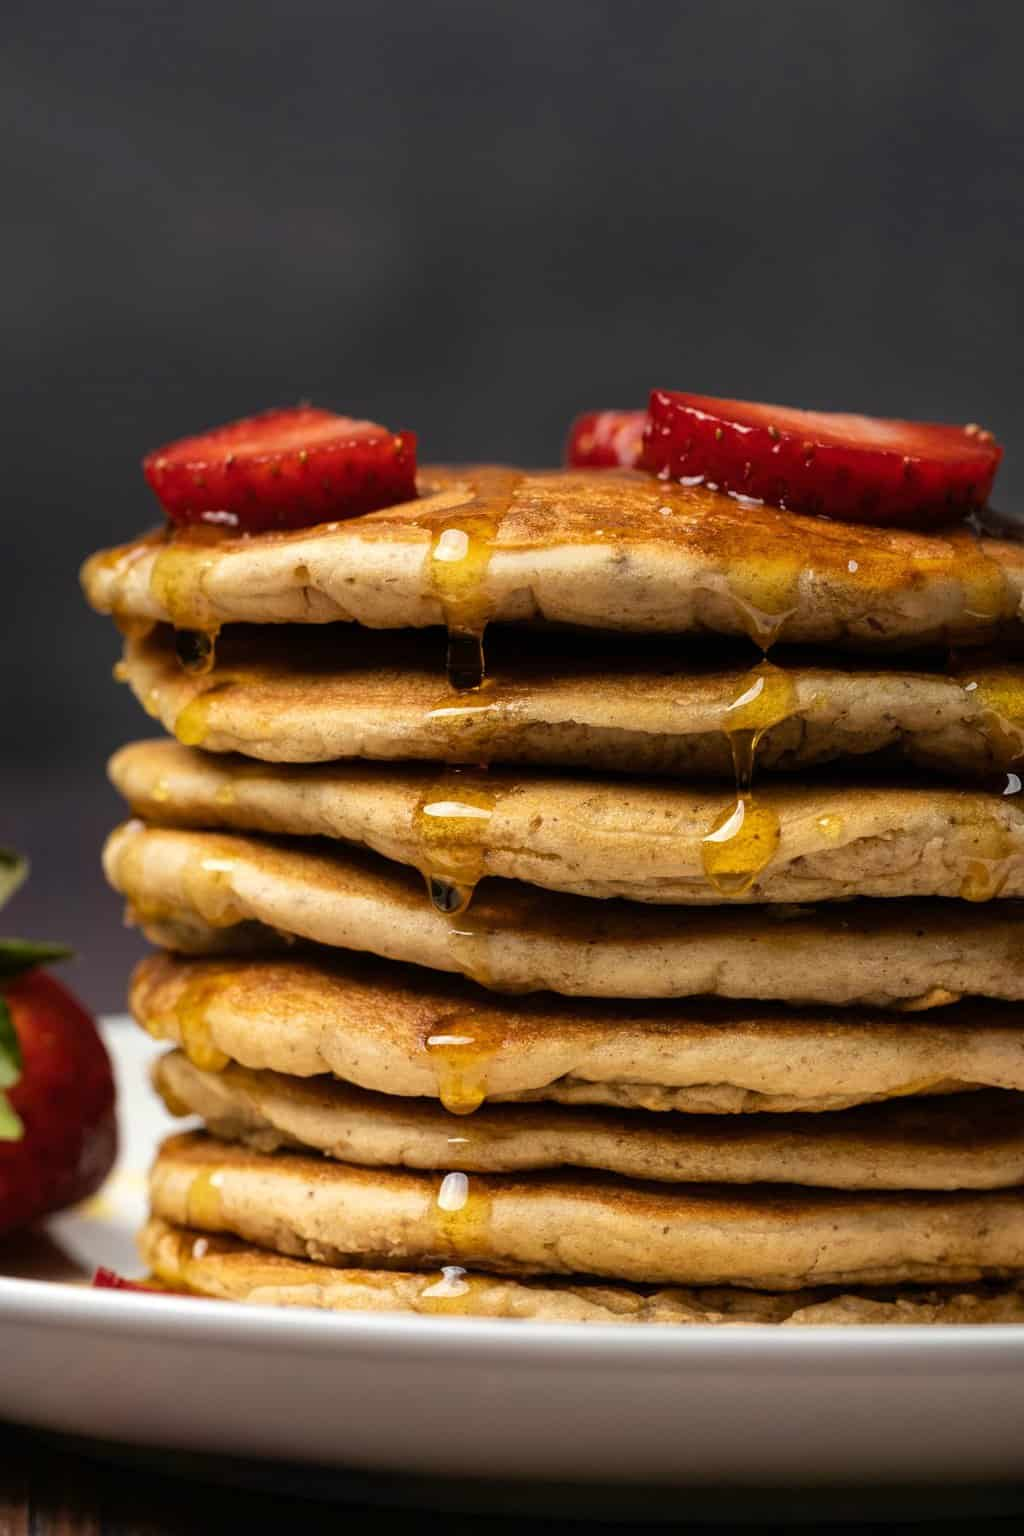 Vegan protein pancakes drizzled with syrup and topped with strawberries.